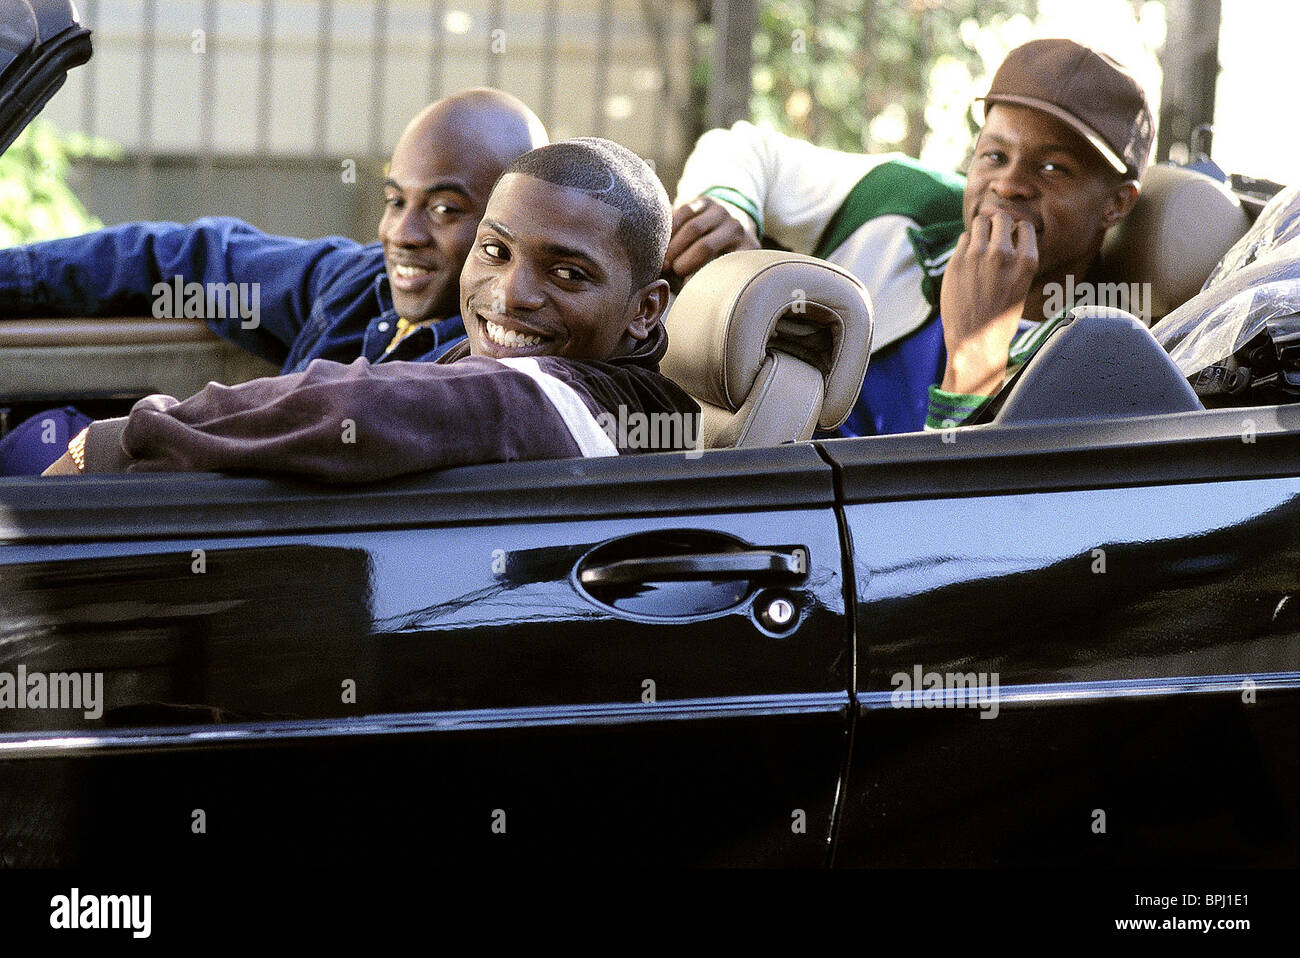 Paid in full photos